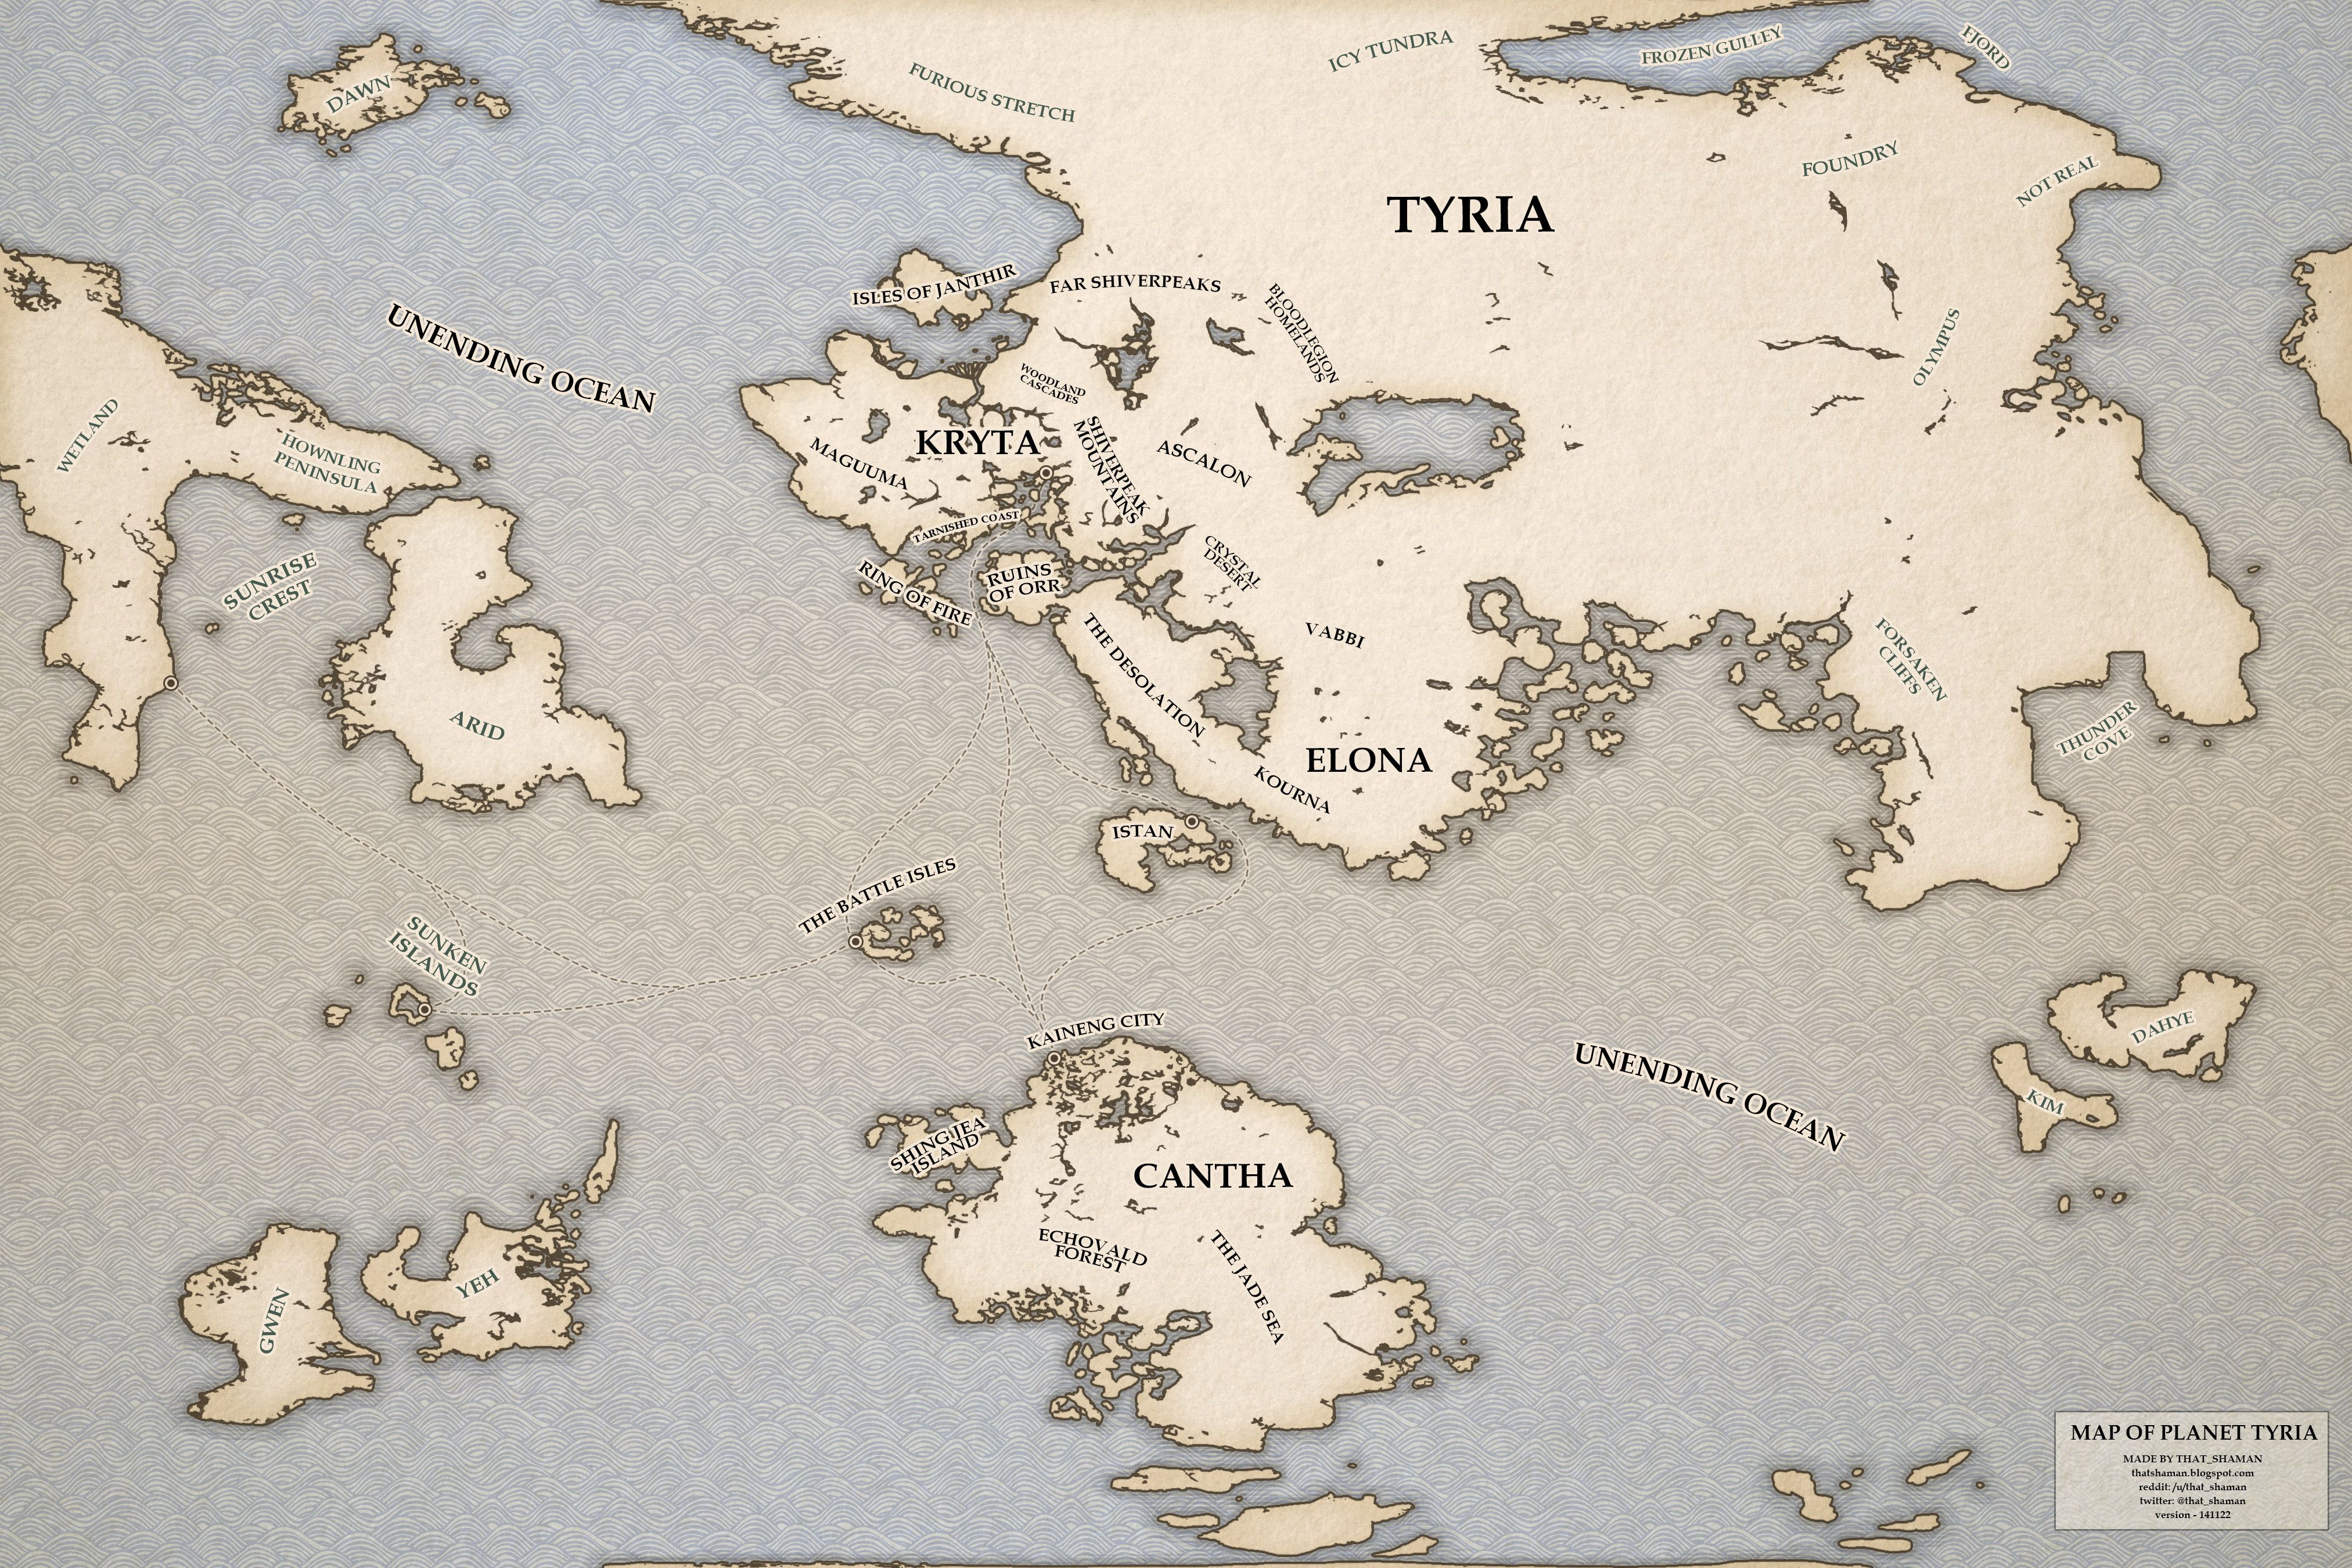 Guild Wars World Map Tyria World Map 2014 v2 (With images) | Guild wars 2, Guild wars, Map